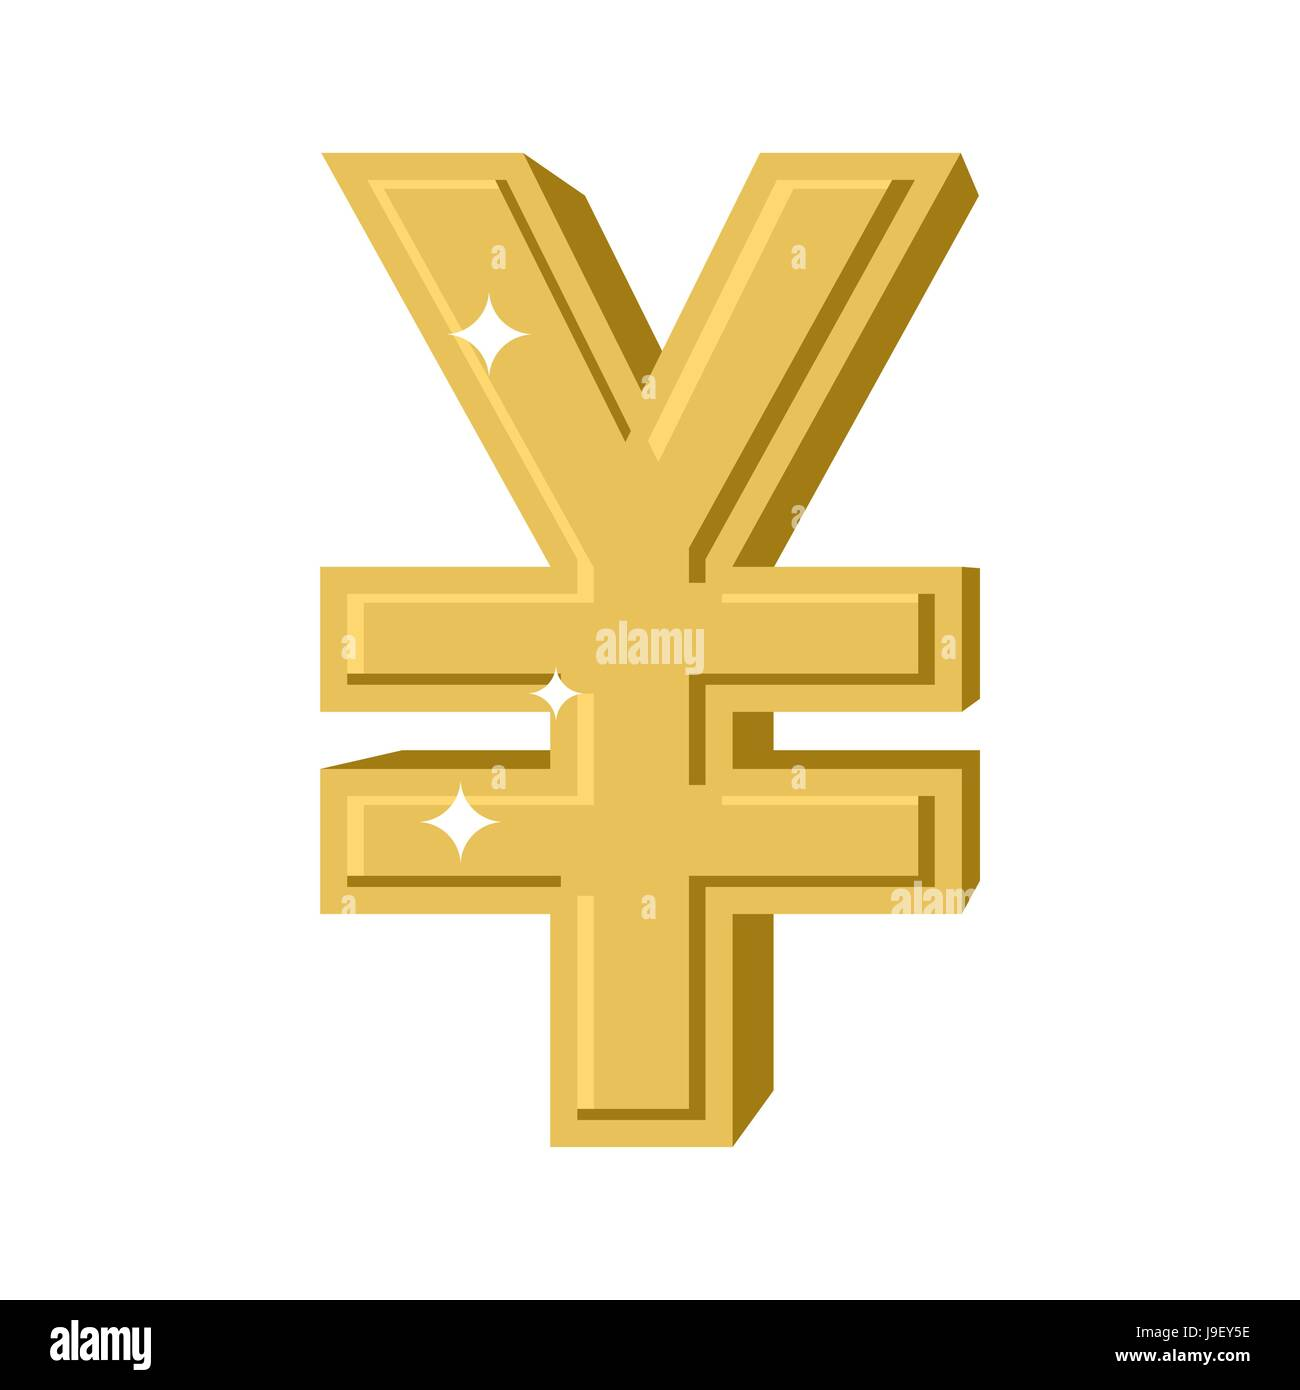 Golden chinese yen symbol of money in china cash sign in china symbol of money in china cash sign in china from yellow precious metal financial illustration biocorpaavc